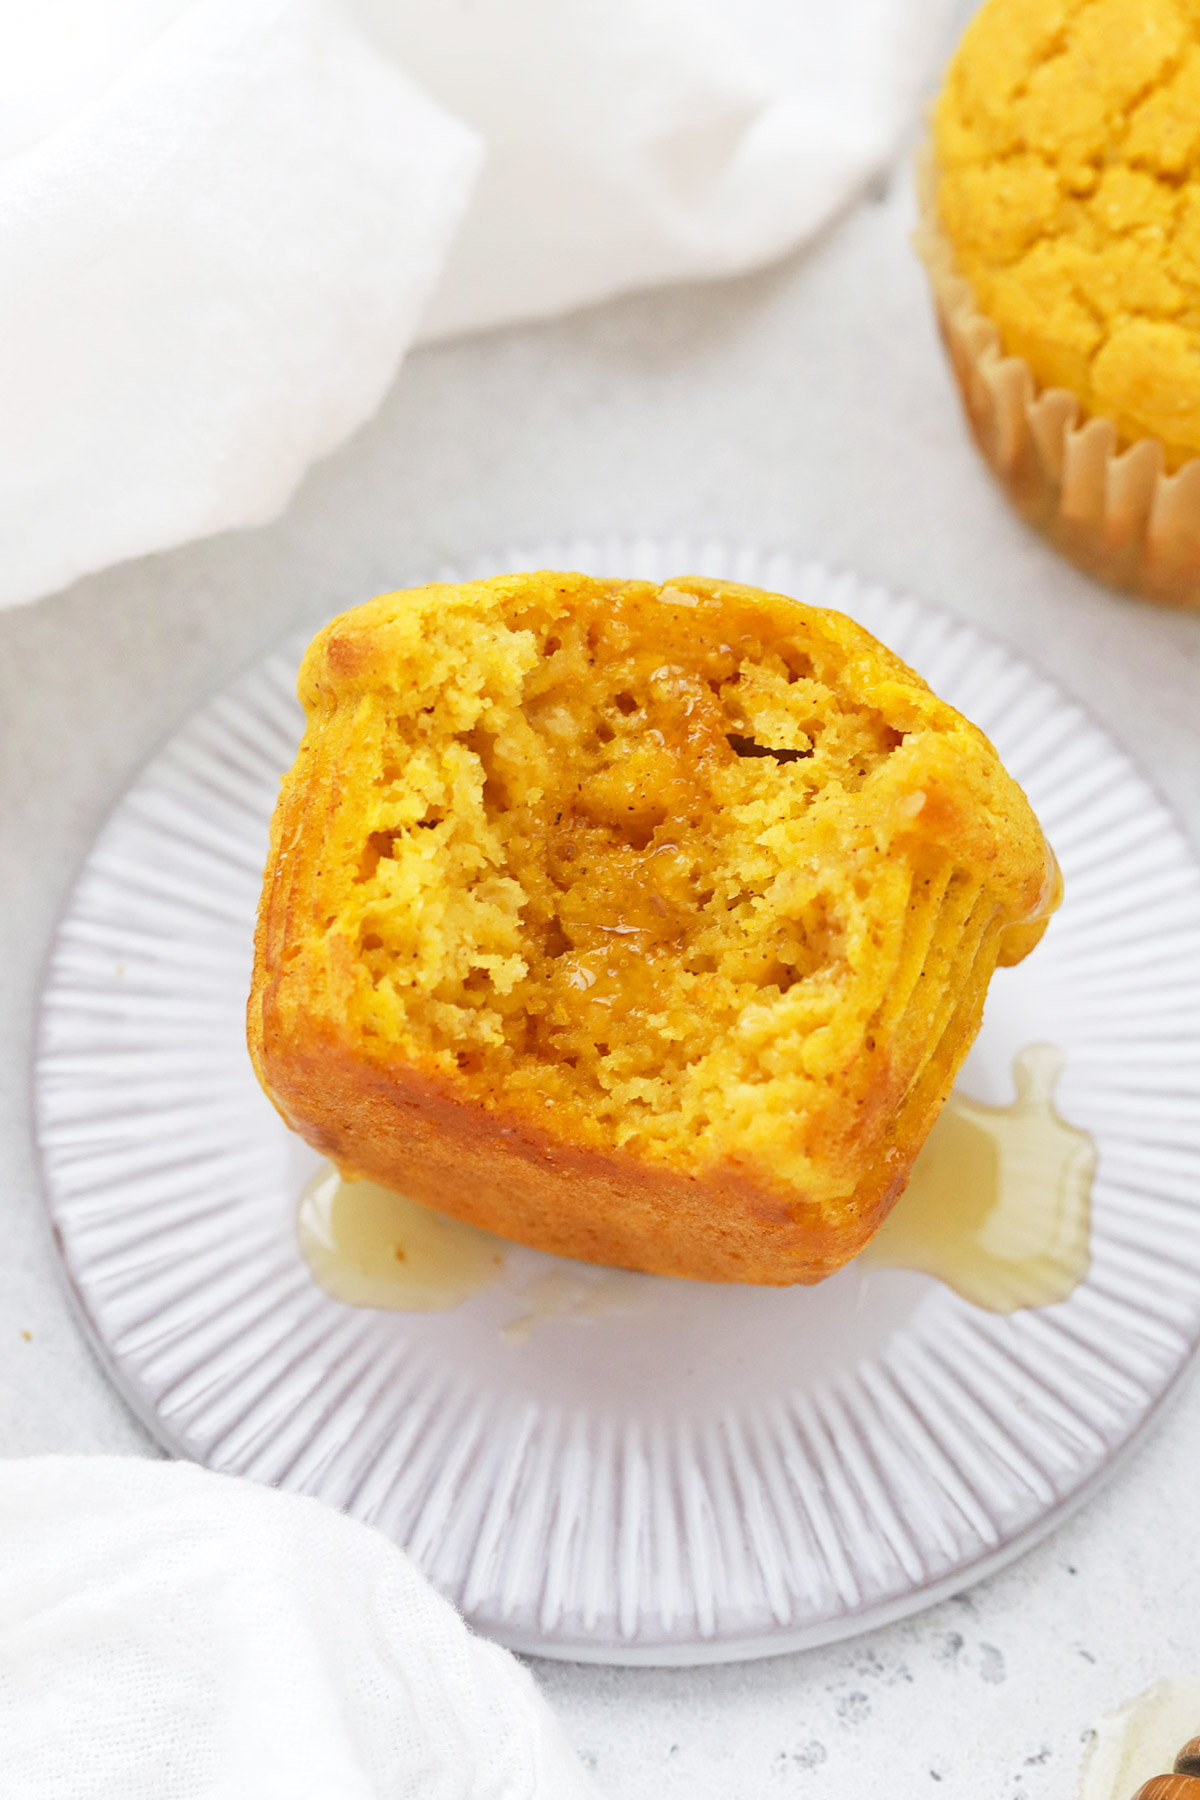 Front view of a gluten-free pumpkin muffin with a bite out of it, drizzled with honey